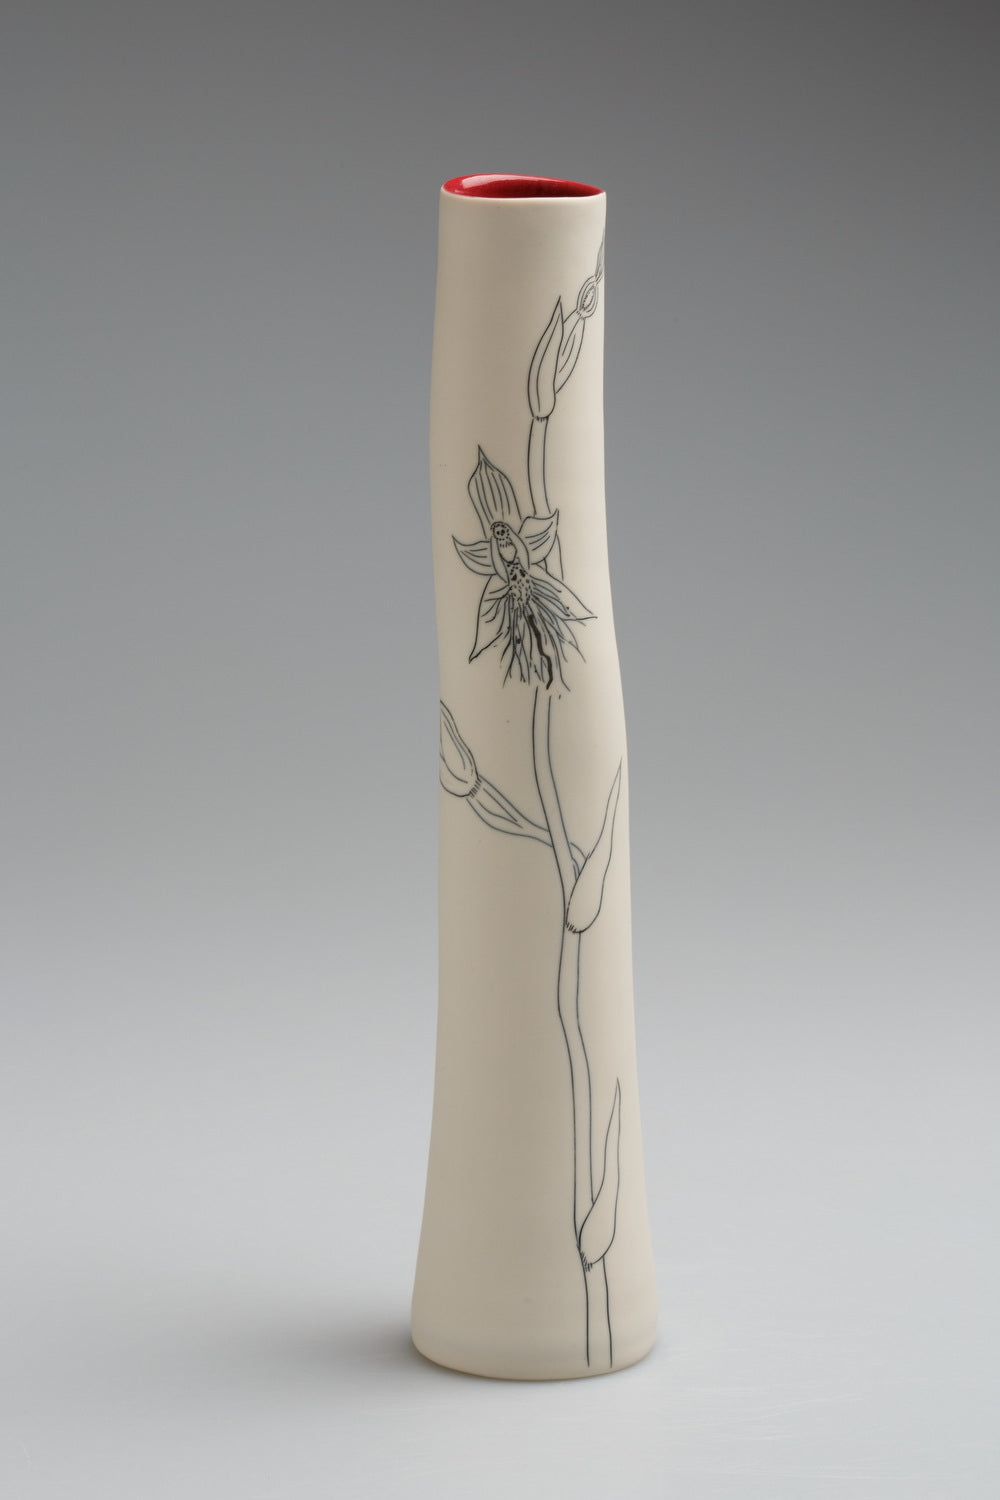 'Beard orchid' porcelain vase by Cathy Franzi